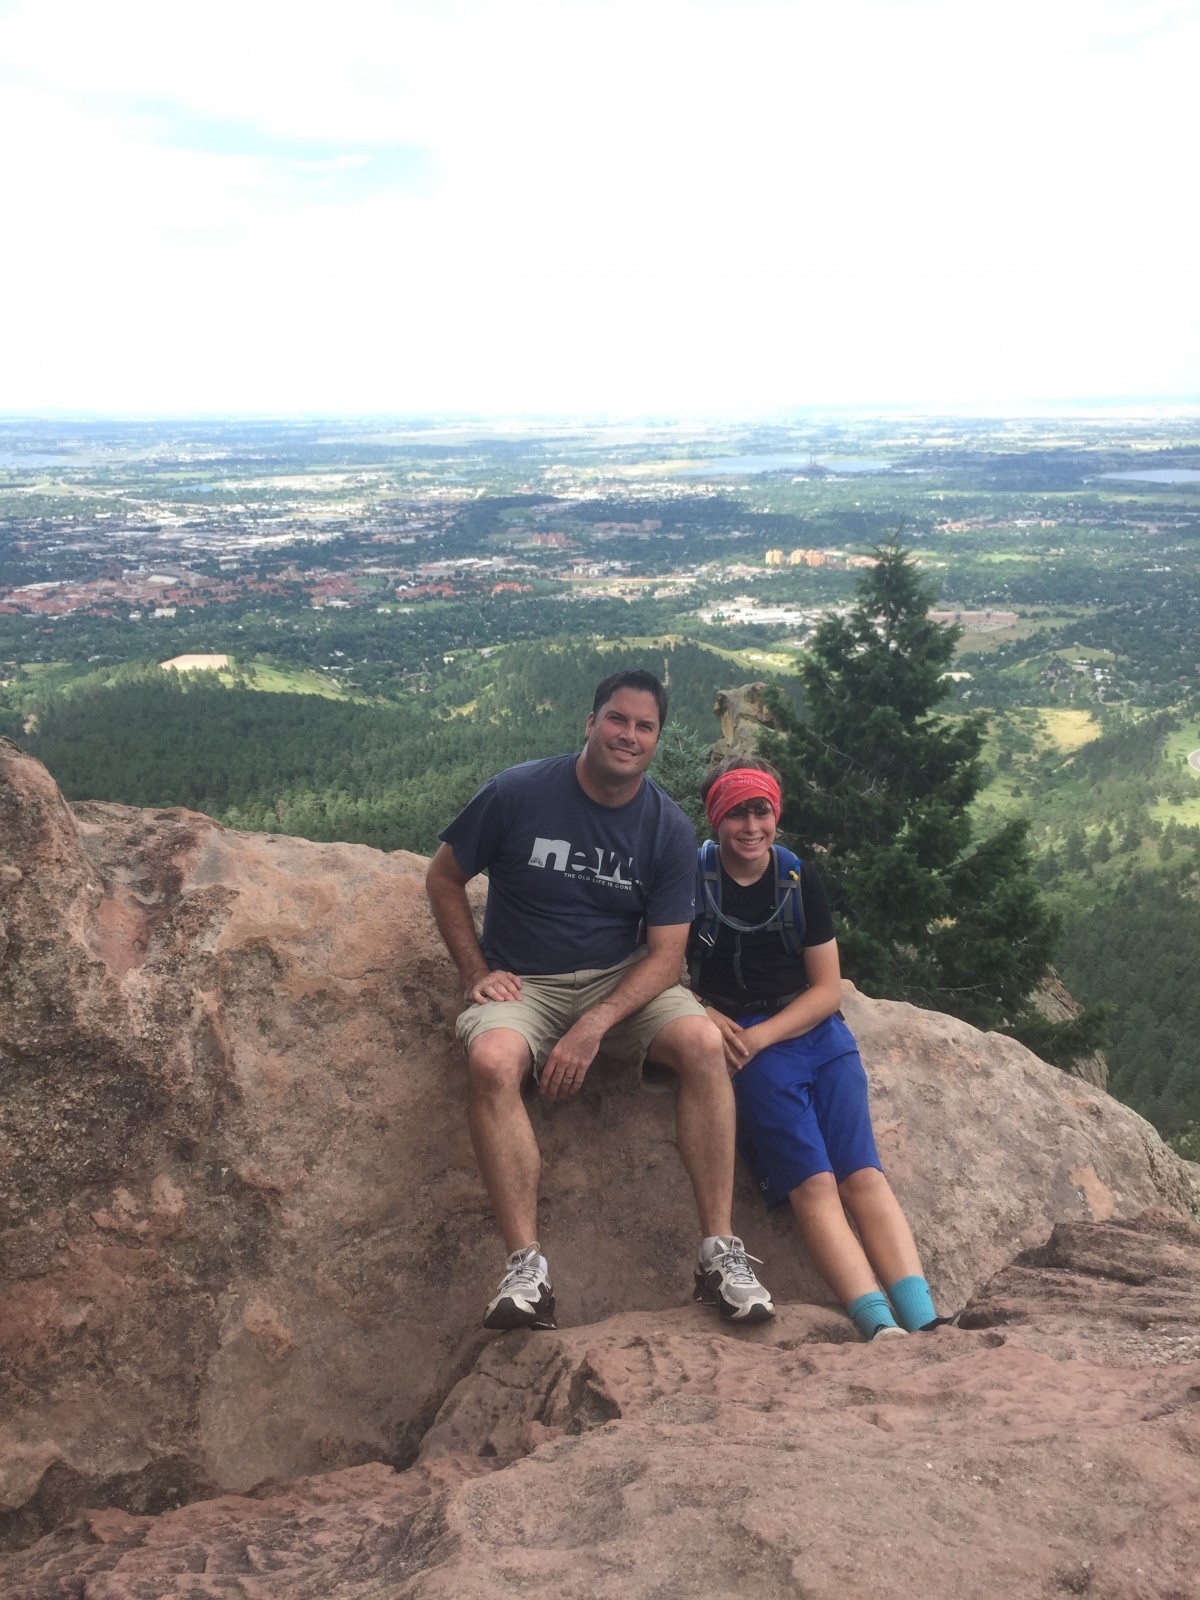 We did find a little time for some hiking.  This is Danny and I on top of the Flatirons in Boulder with CU (my alma mater) behind us. Go Buffs!